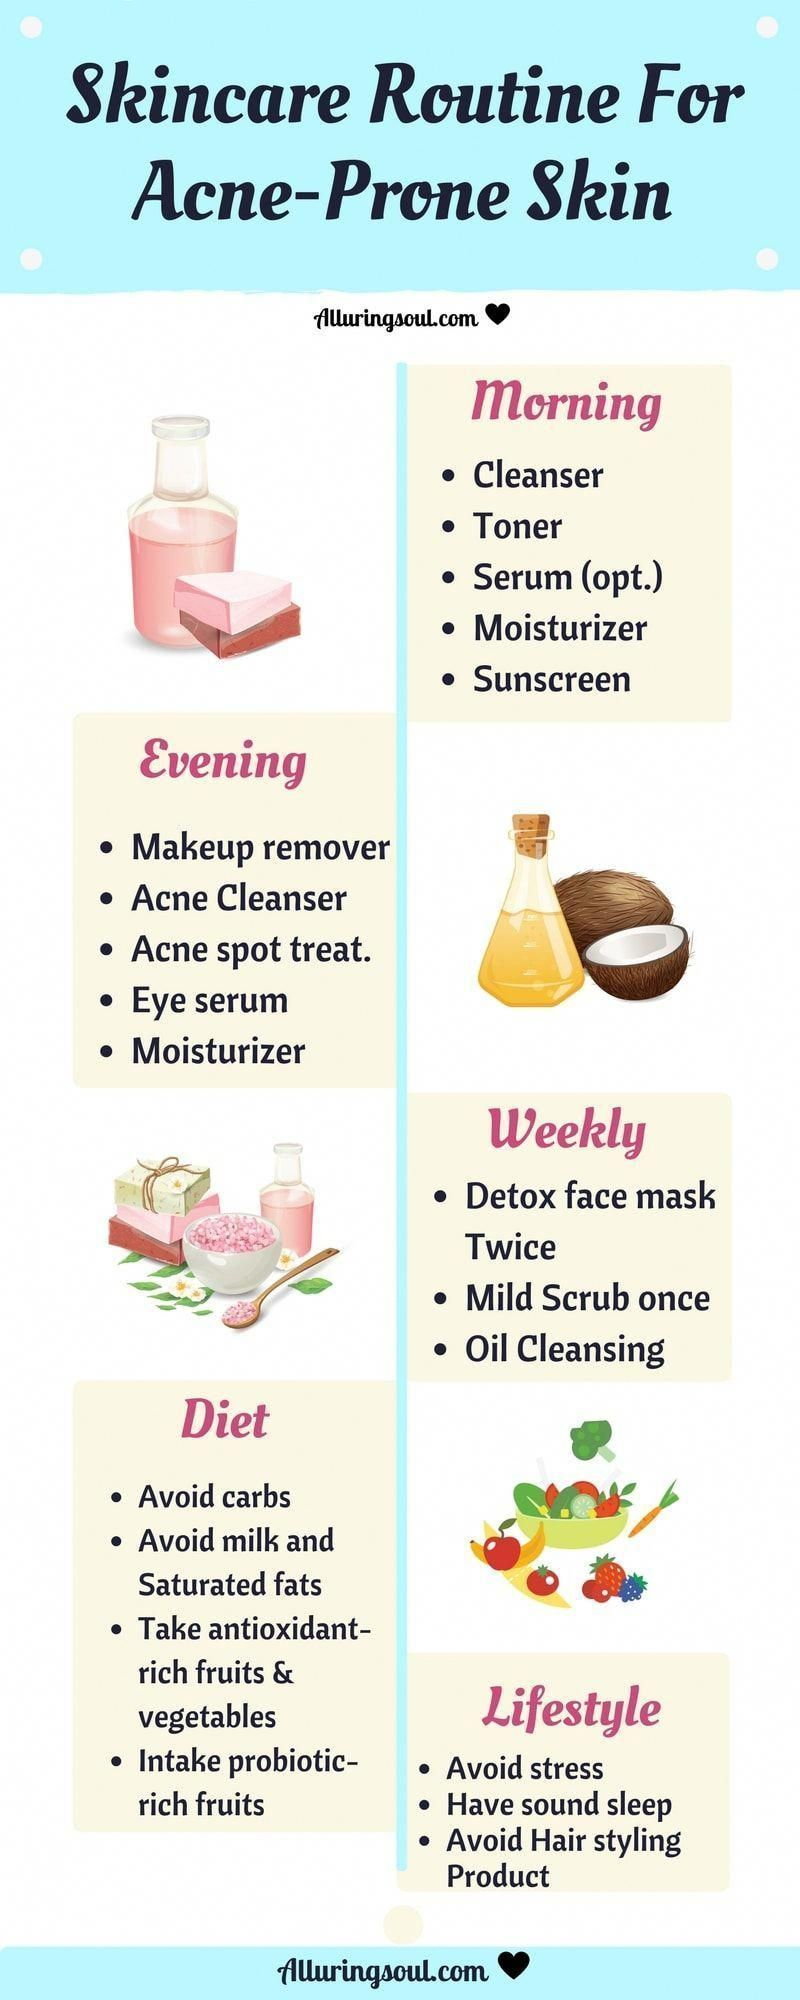 Quit Acne Using Natural Skin Care Guide For Acne Prone Skin And